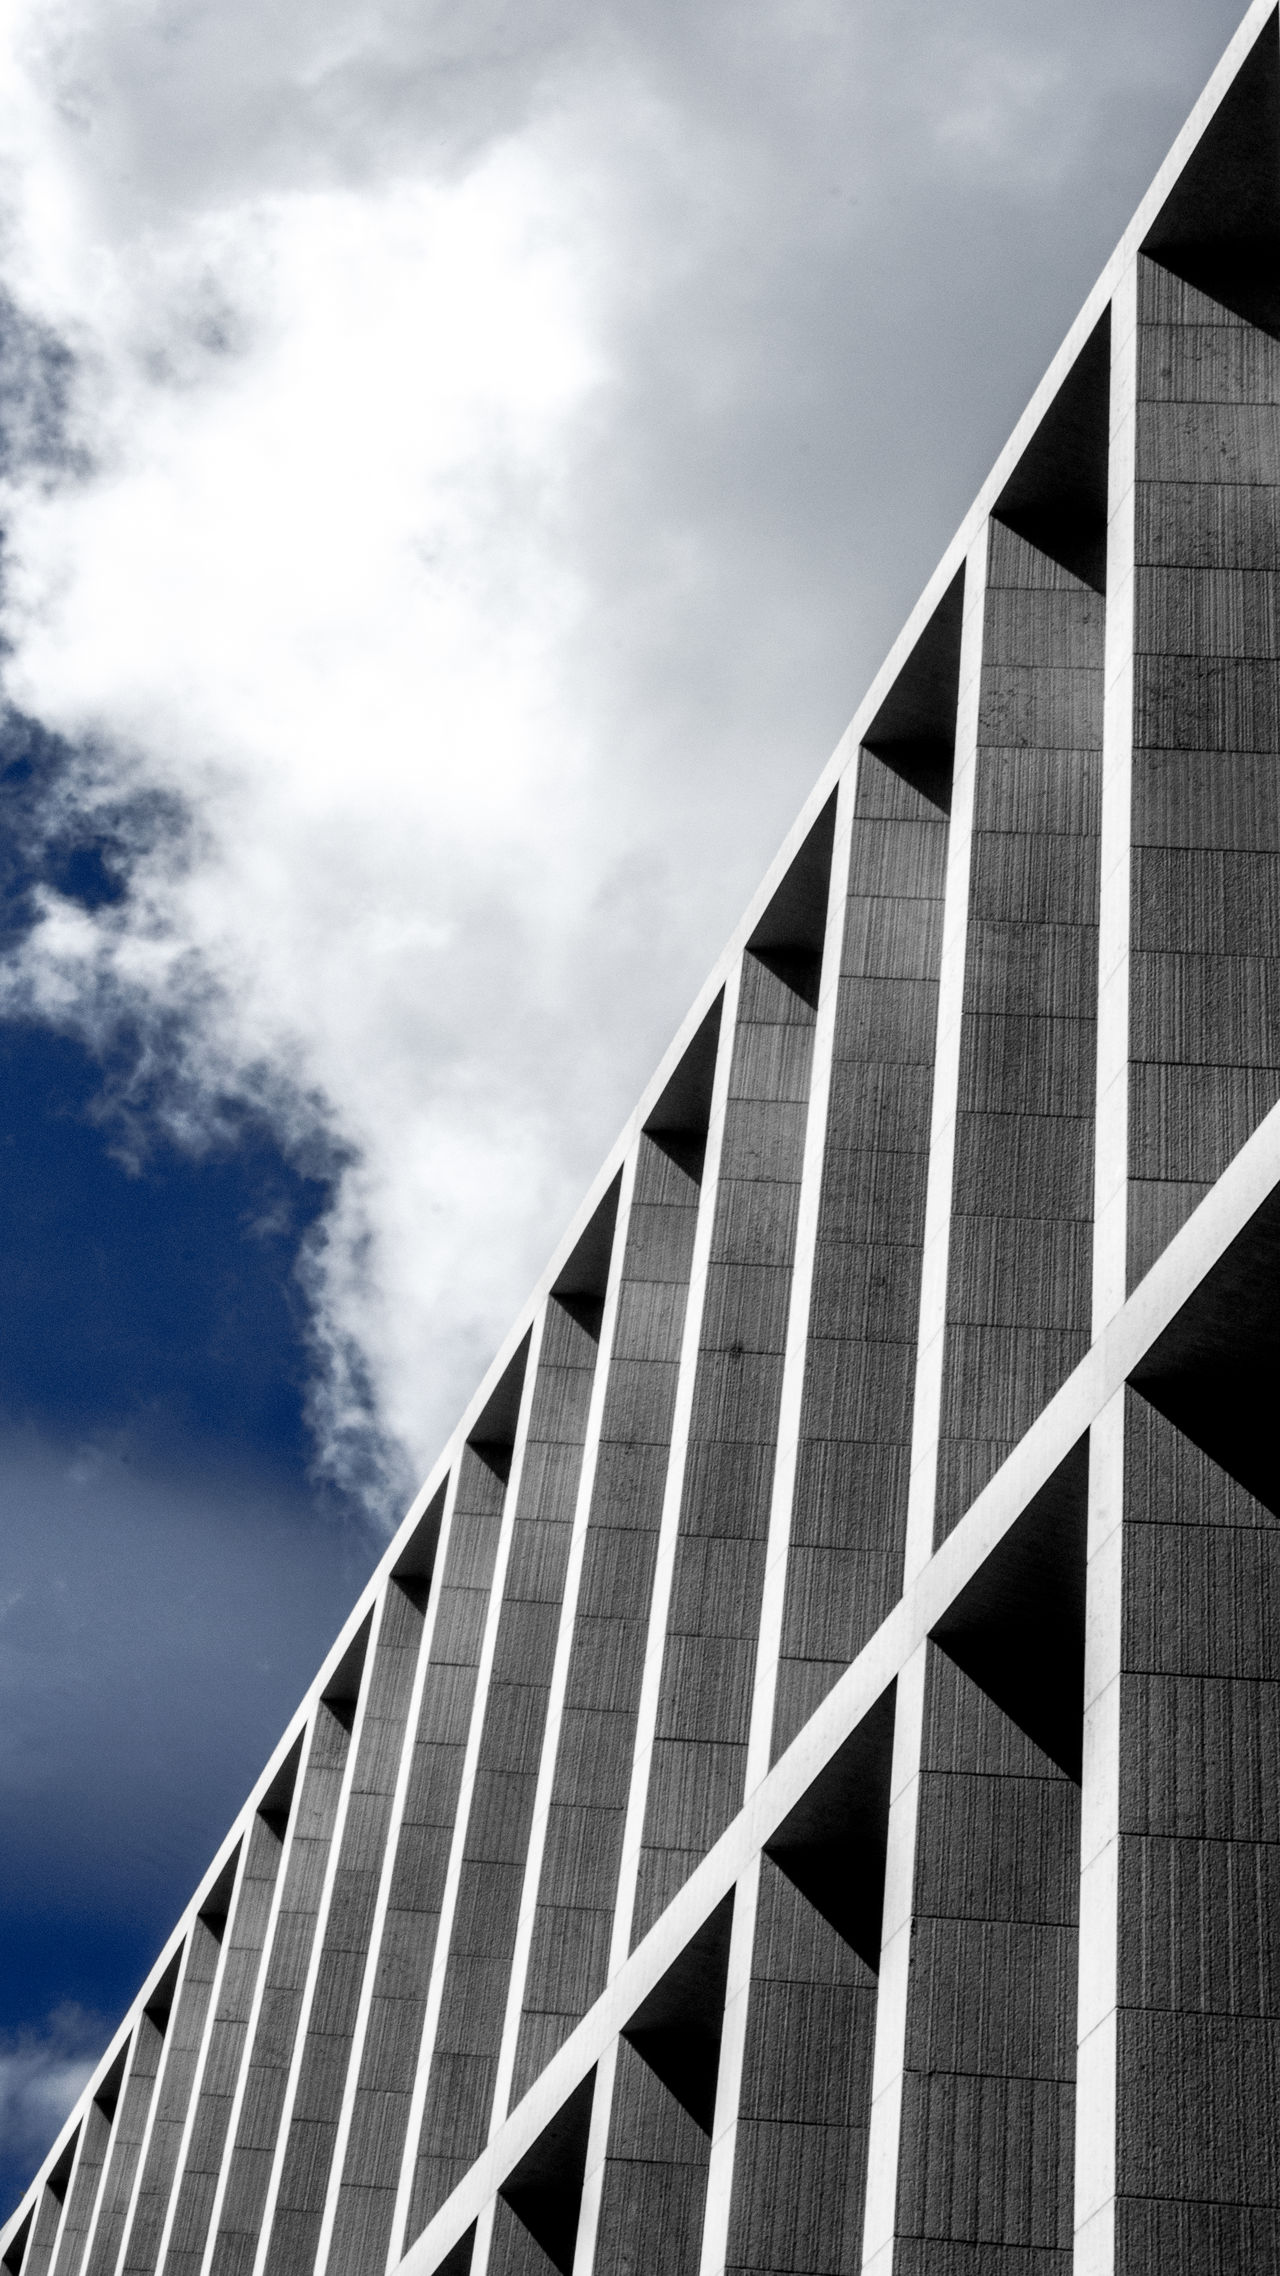 Vertical 004 Architectural Detail Architecture Architecture_collection Architecturelovers Building Exterior Built Structure City Cloud - Sky Day Diagonal Low Angle View Modern No People Outdoors Sky Urban Geometry Art Is Everywhere The Architect - 2017 EyeEm Awards Premium Collection